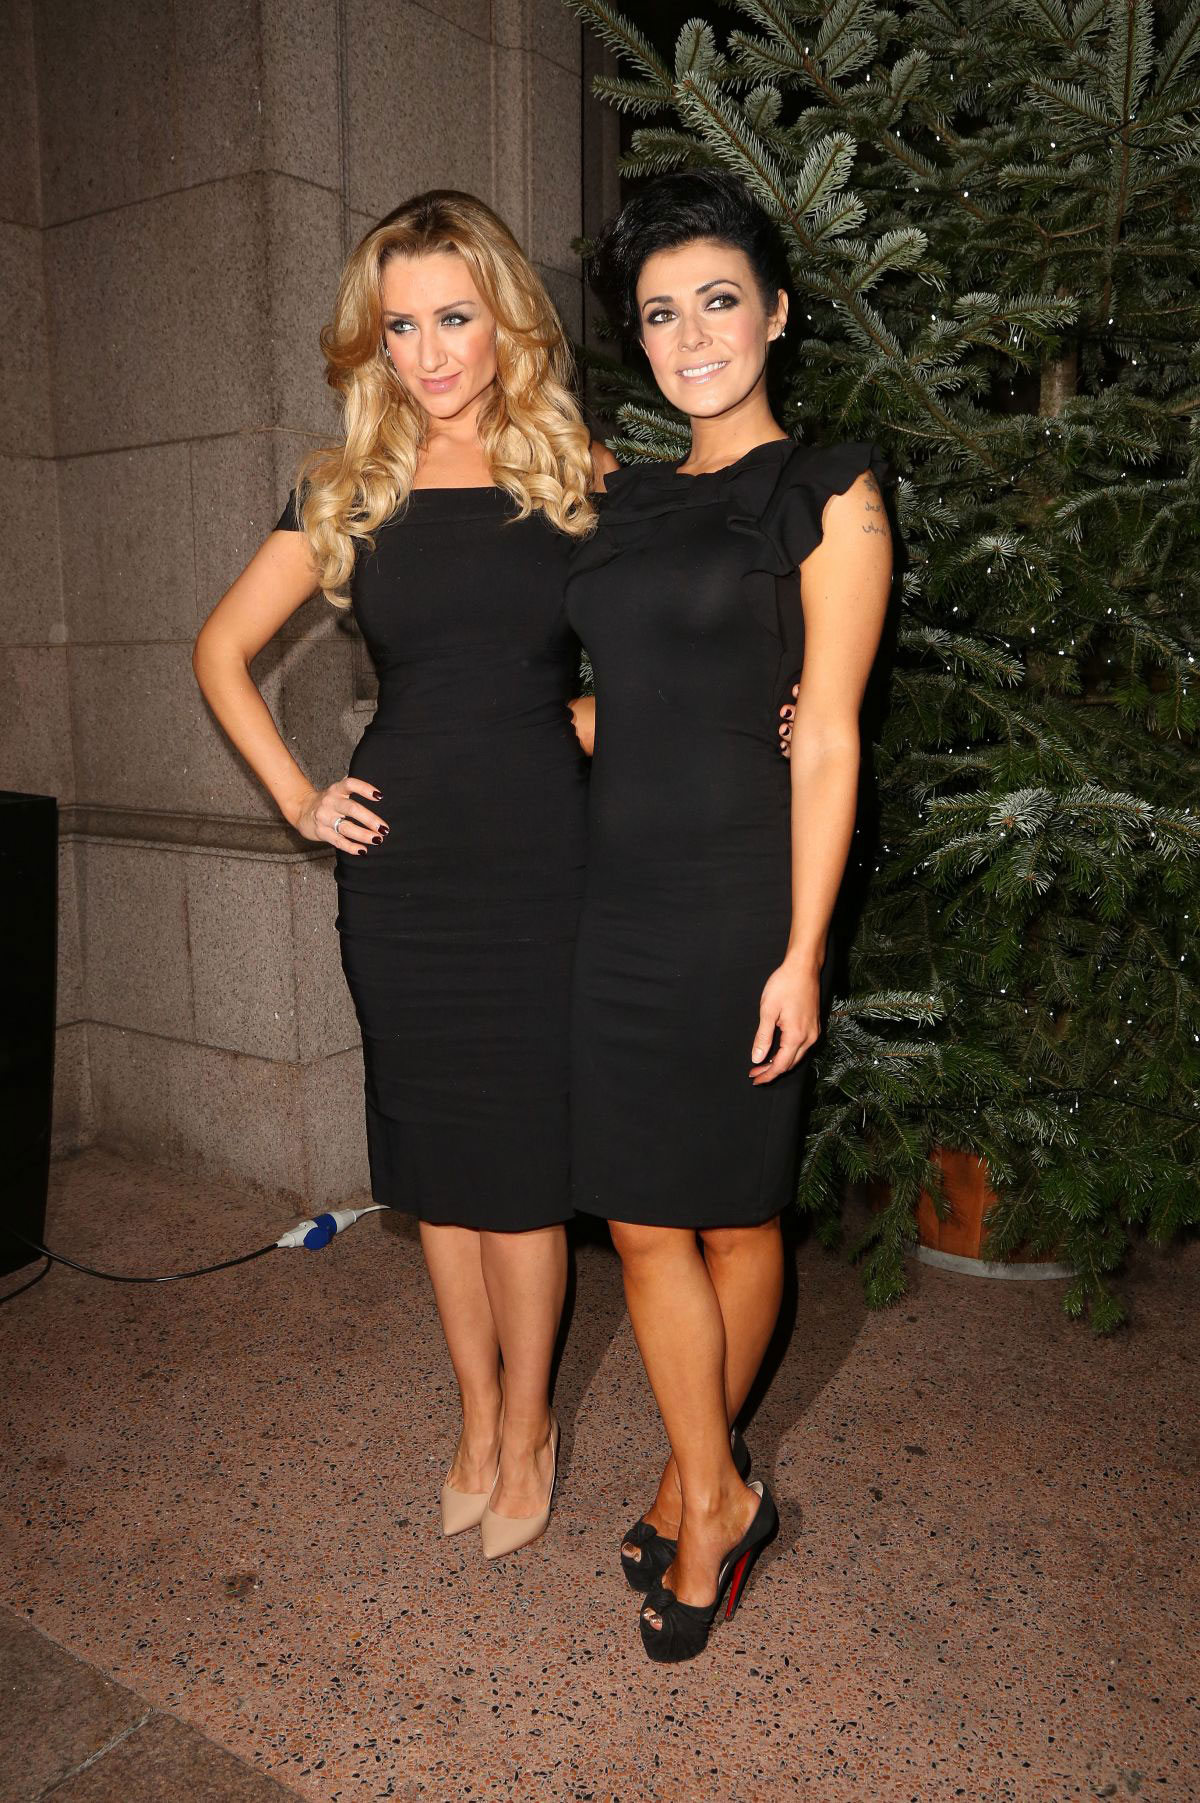 Coronation Streets Catherine Tyldesley dons daring cutout